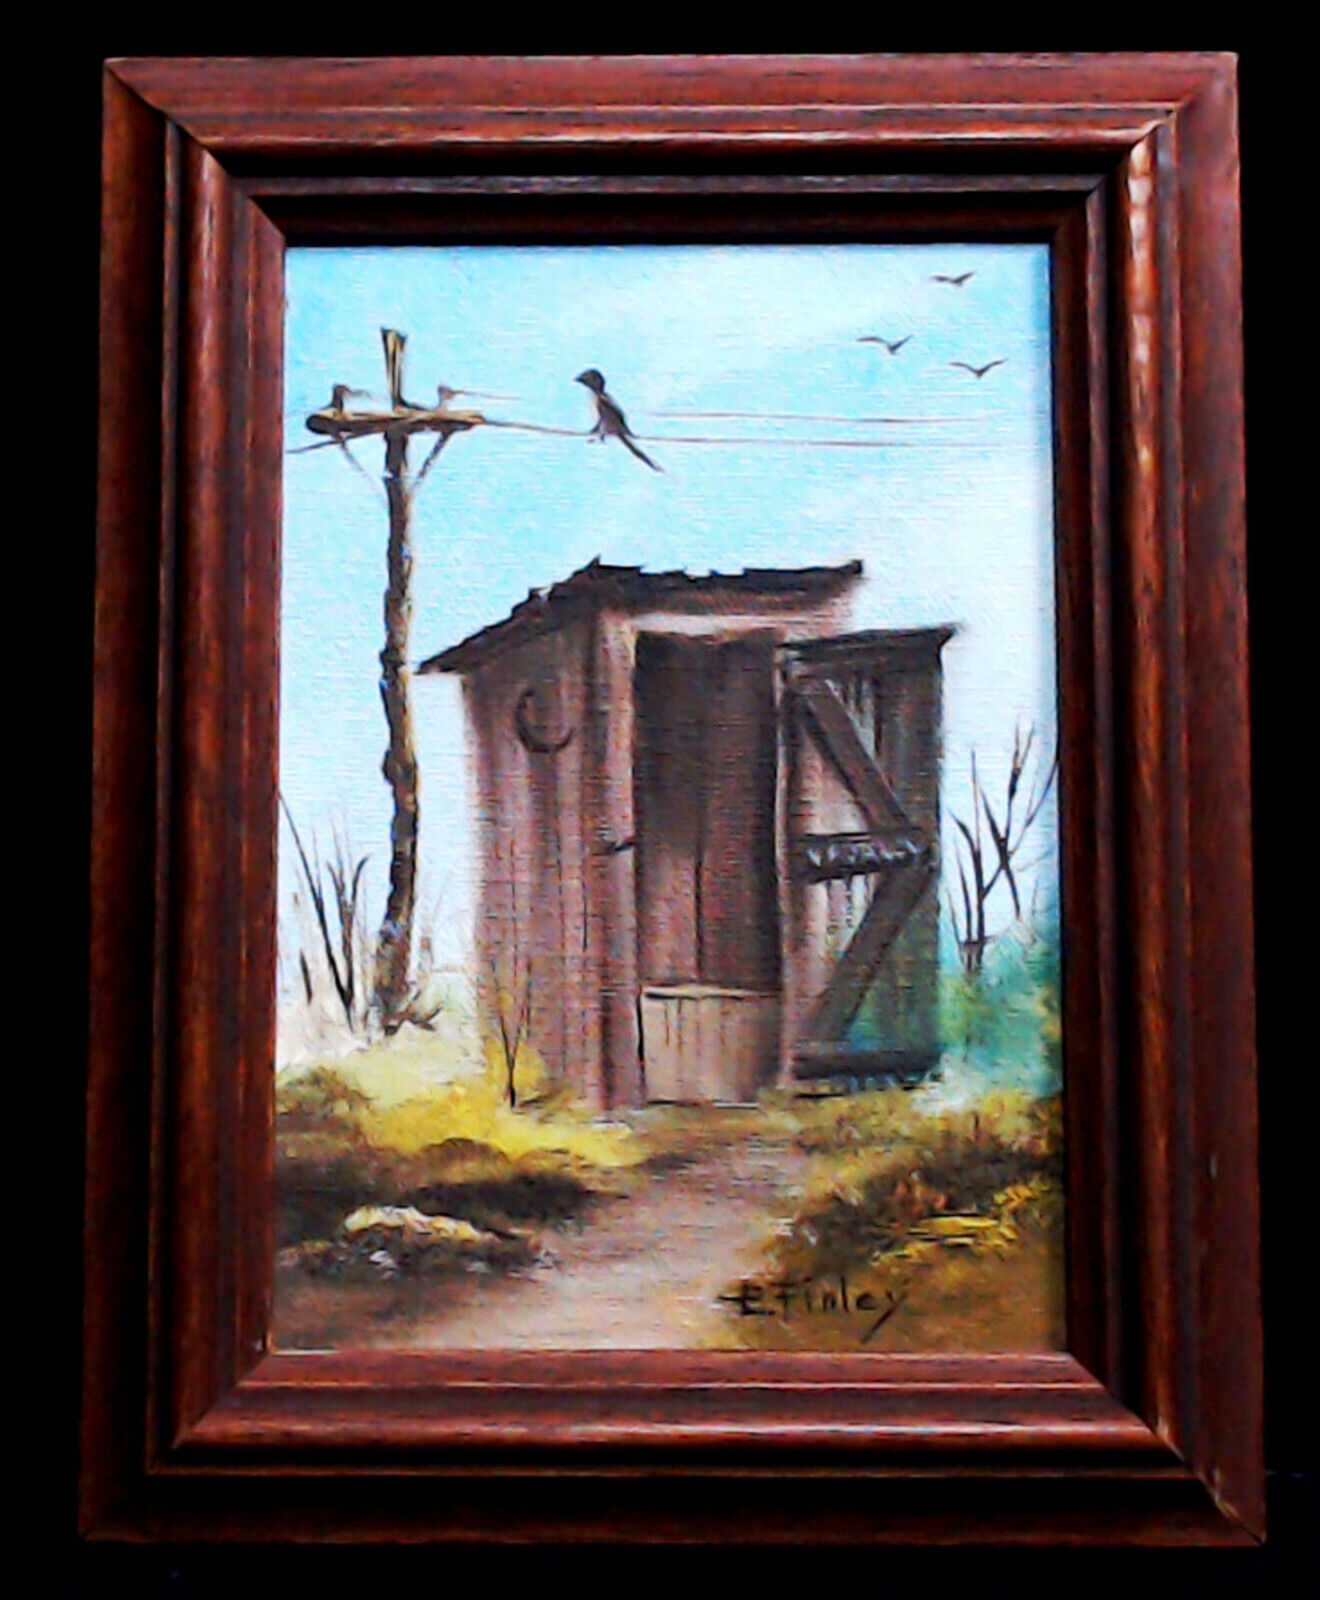 ORIGINAL ARTWORK Of E. FINLEY OIL On HARDBOARD FRAMED 9 BY 7 RUSTIC 2 PIECES  - $48.88